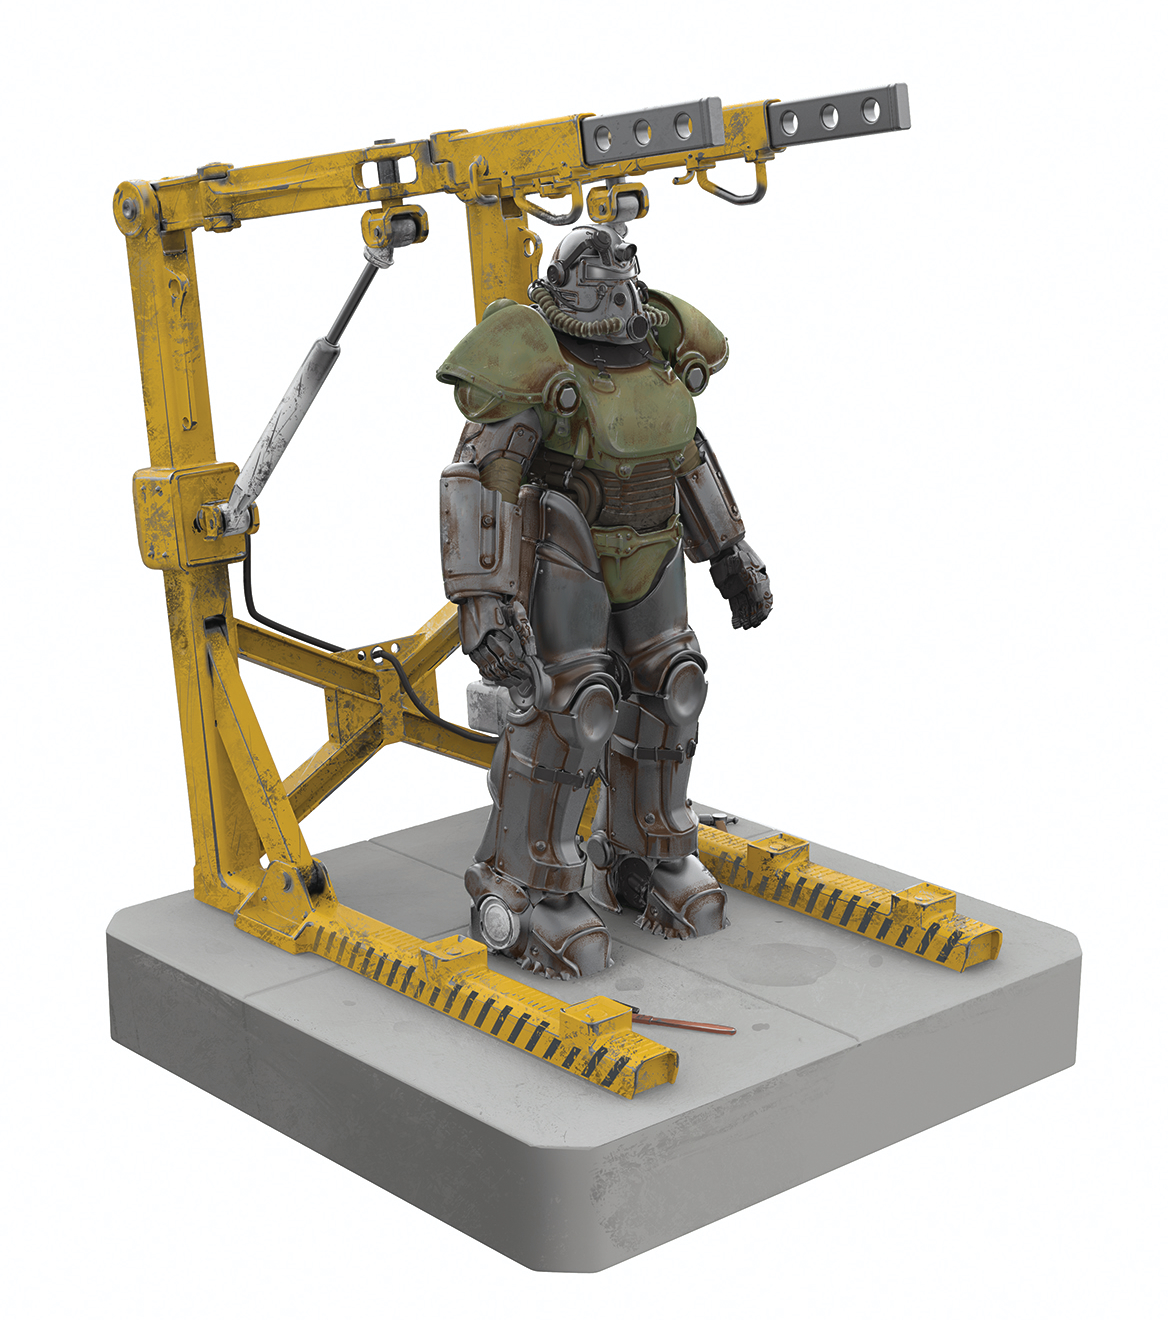 FALLOUT T-51 POWER ARMOR AND CRADLE 4 PORT USB HUB